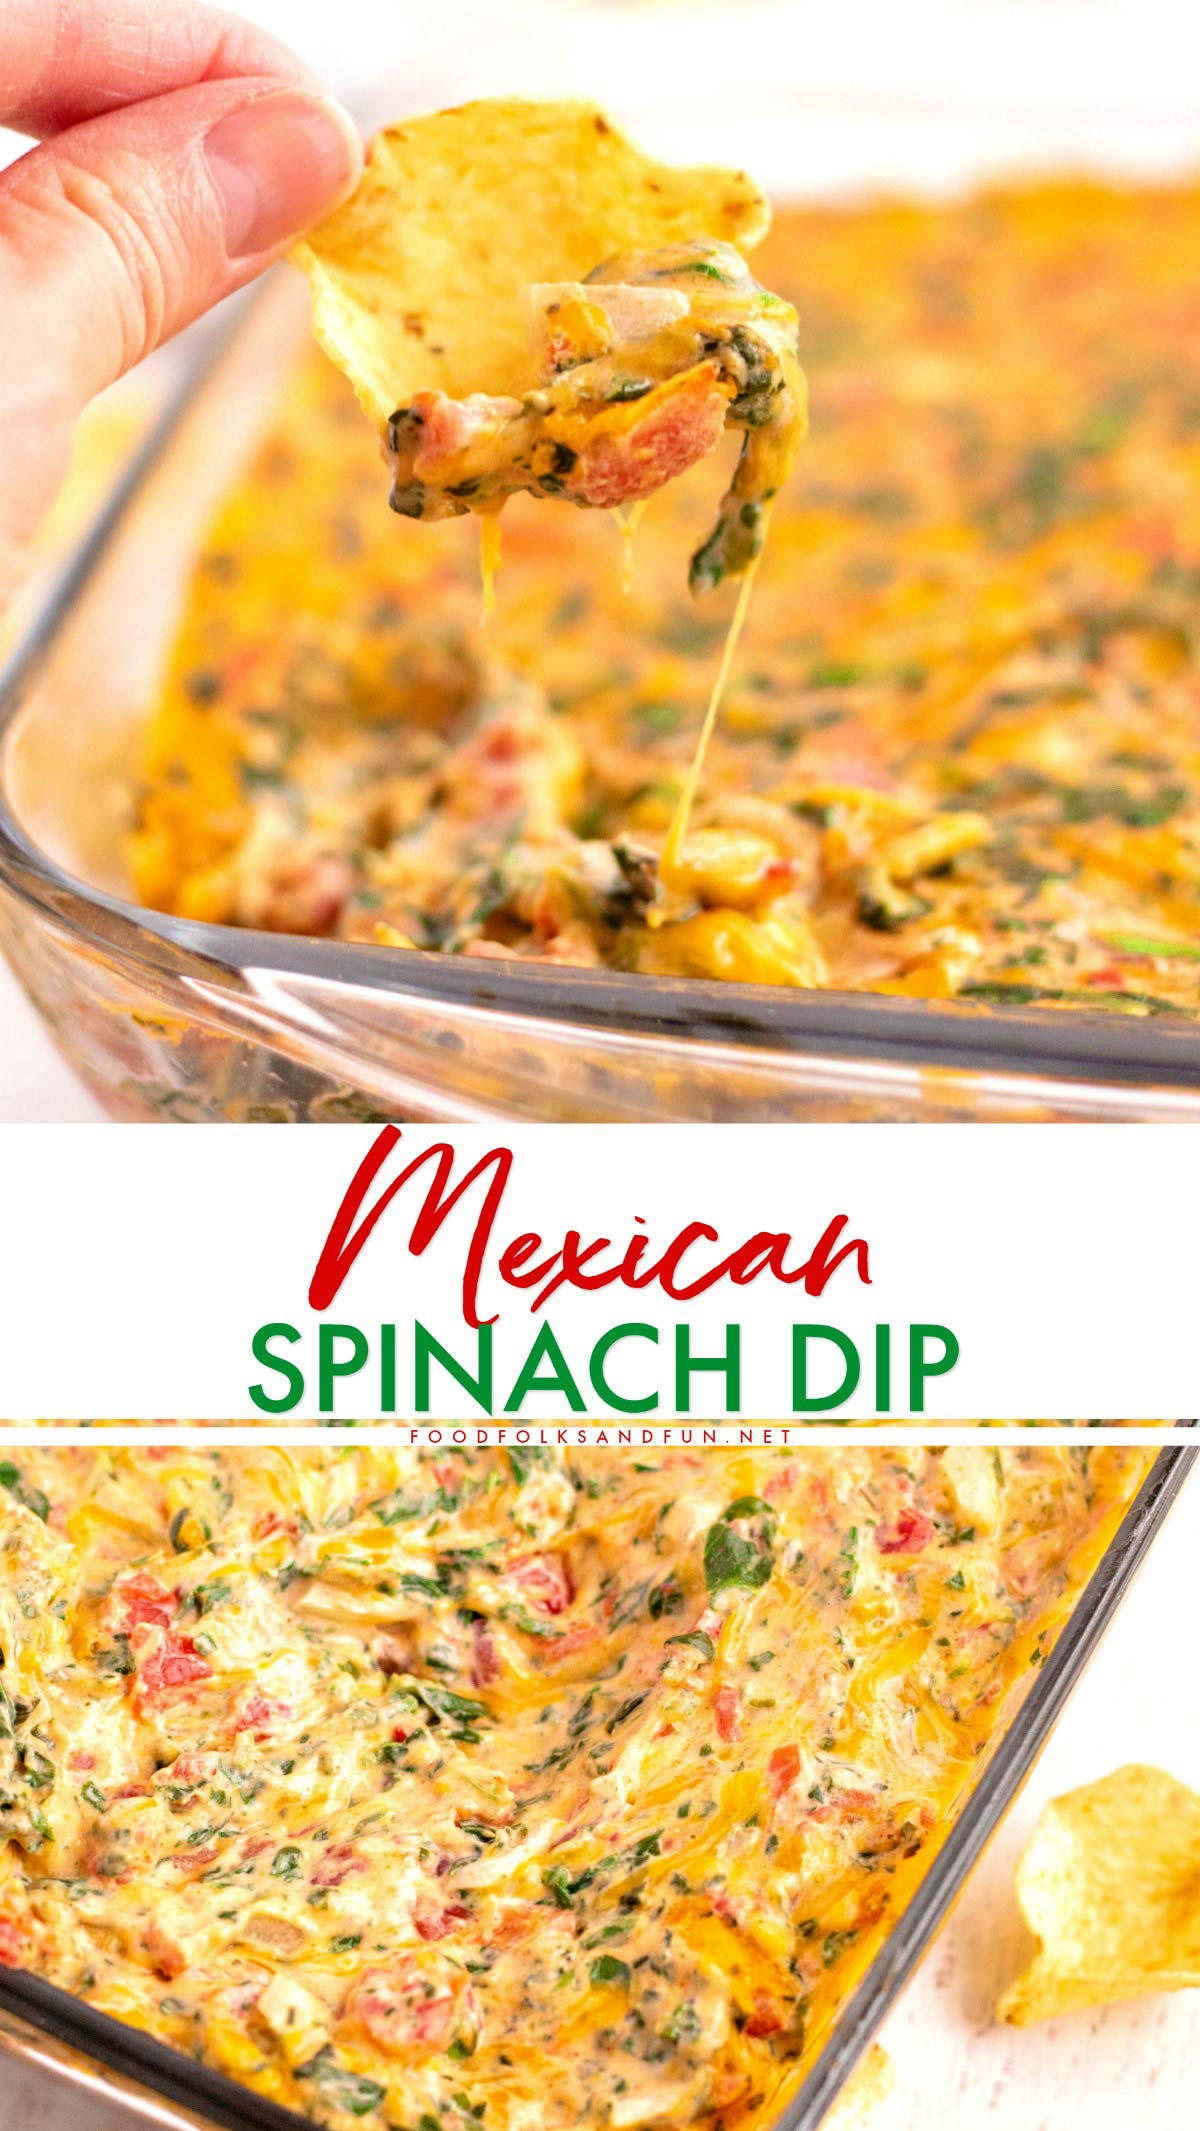 If you love spinach dip and Mexican food then you'll LOVE my Mexican Spinach Dip recipe! It's a tasty party, holiday, tailgating, and Super Bowl recipe! via @foodfolksandfun